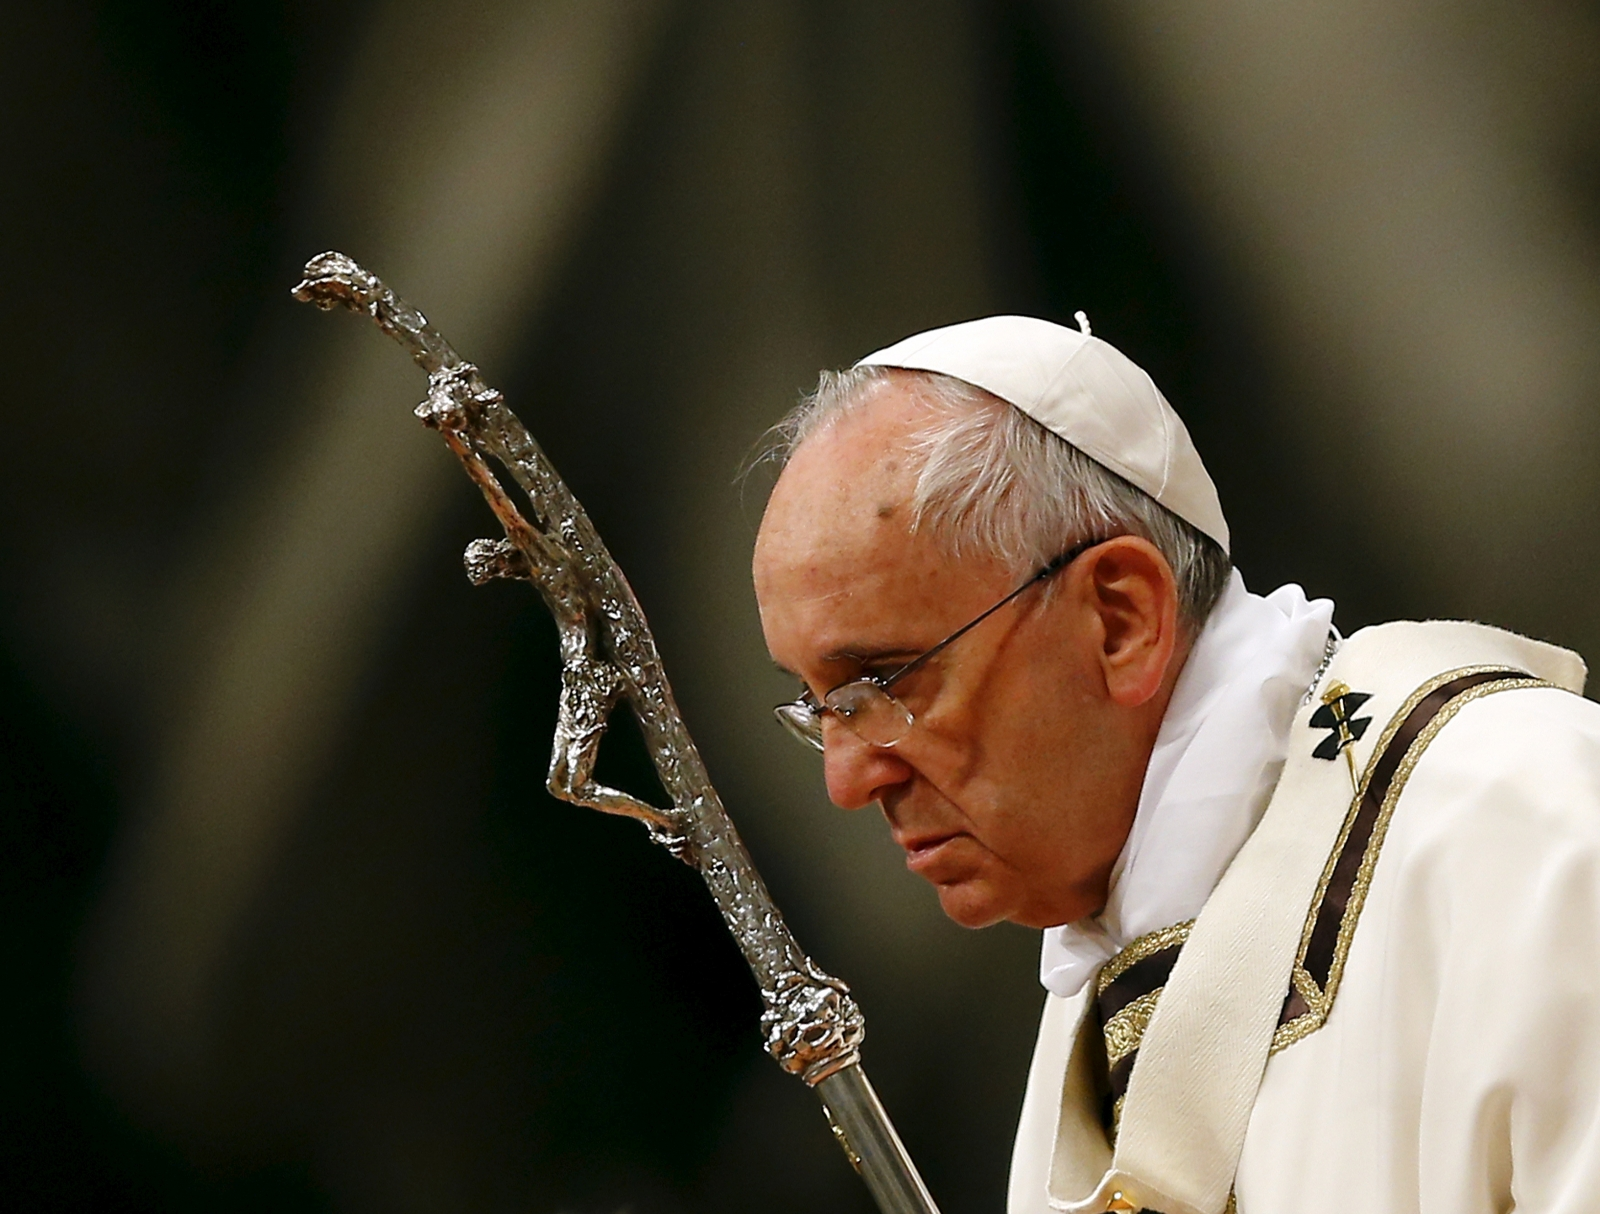 Pope Francis Easter homily